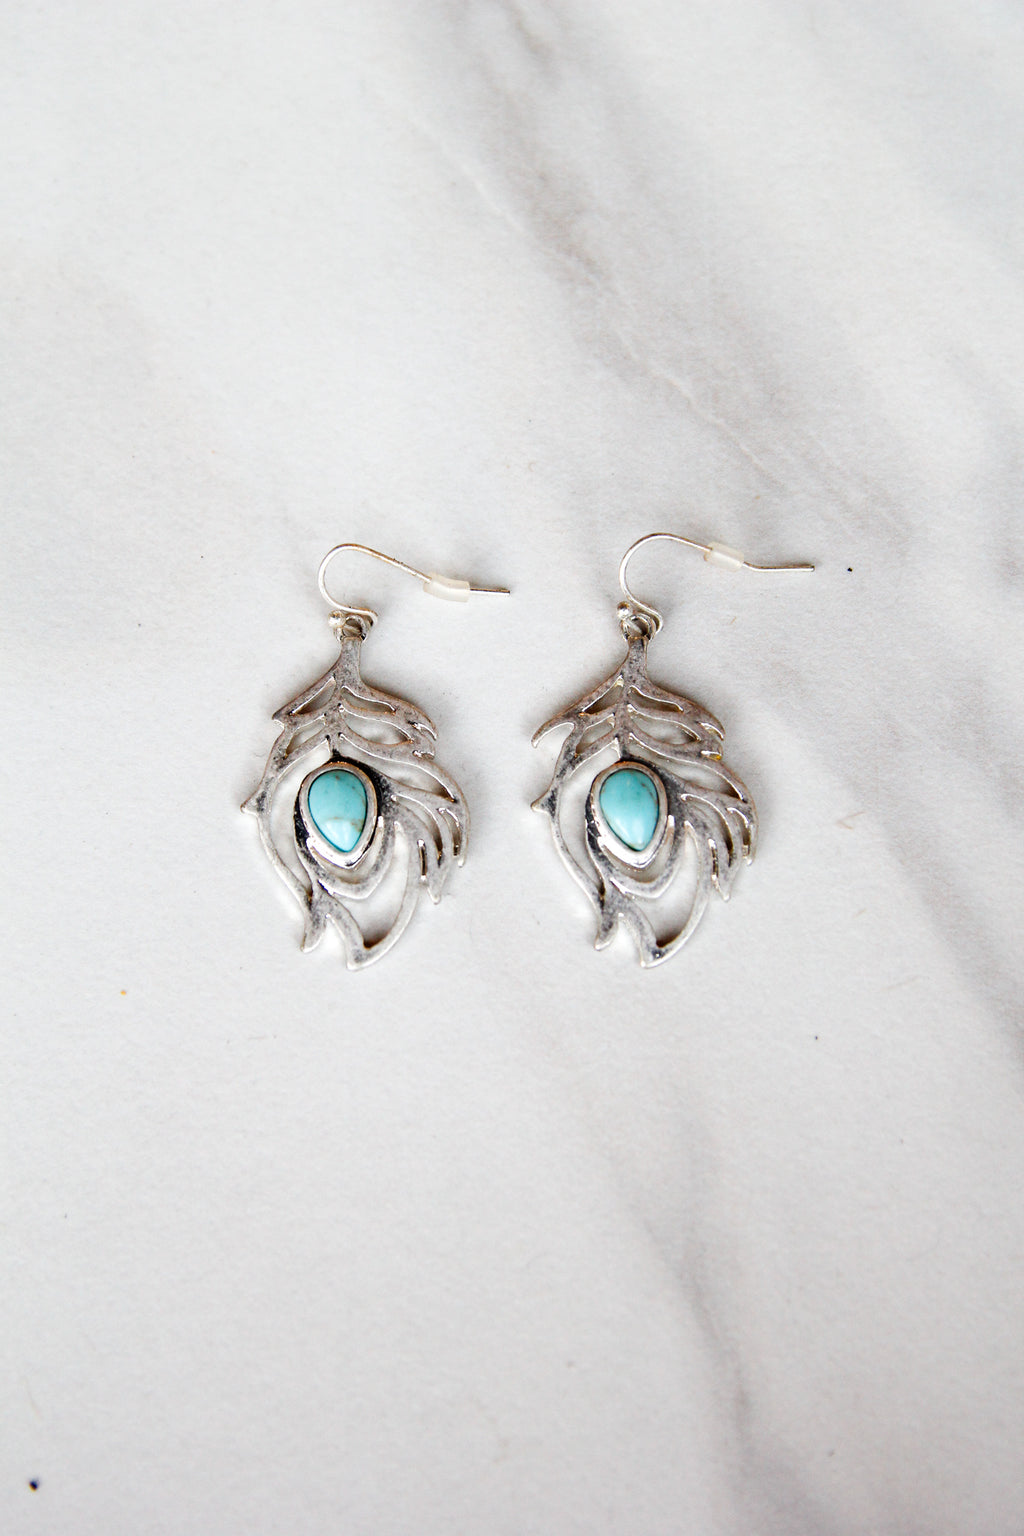 Silver Leaf with Turquoise Stone Earrings